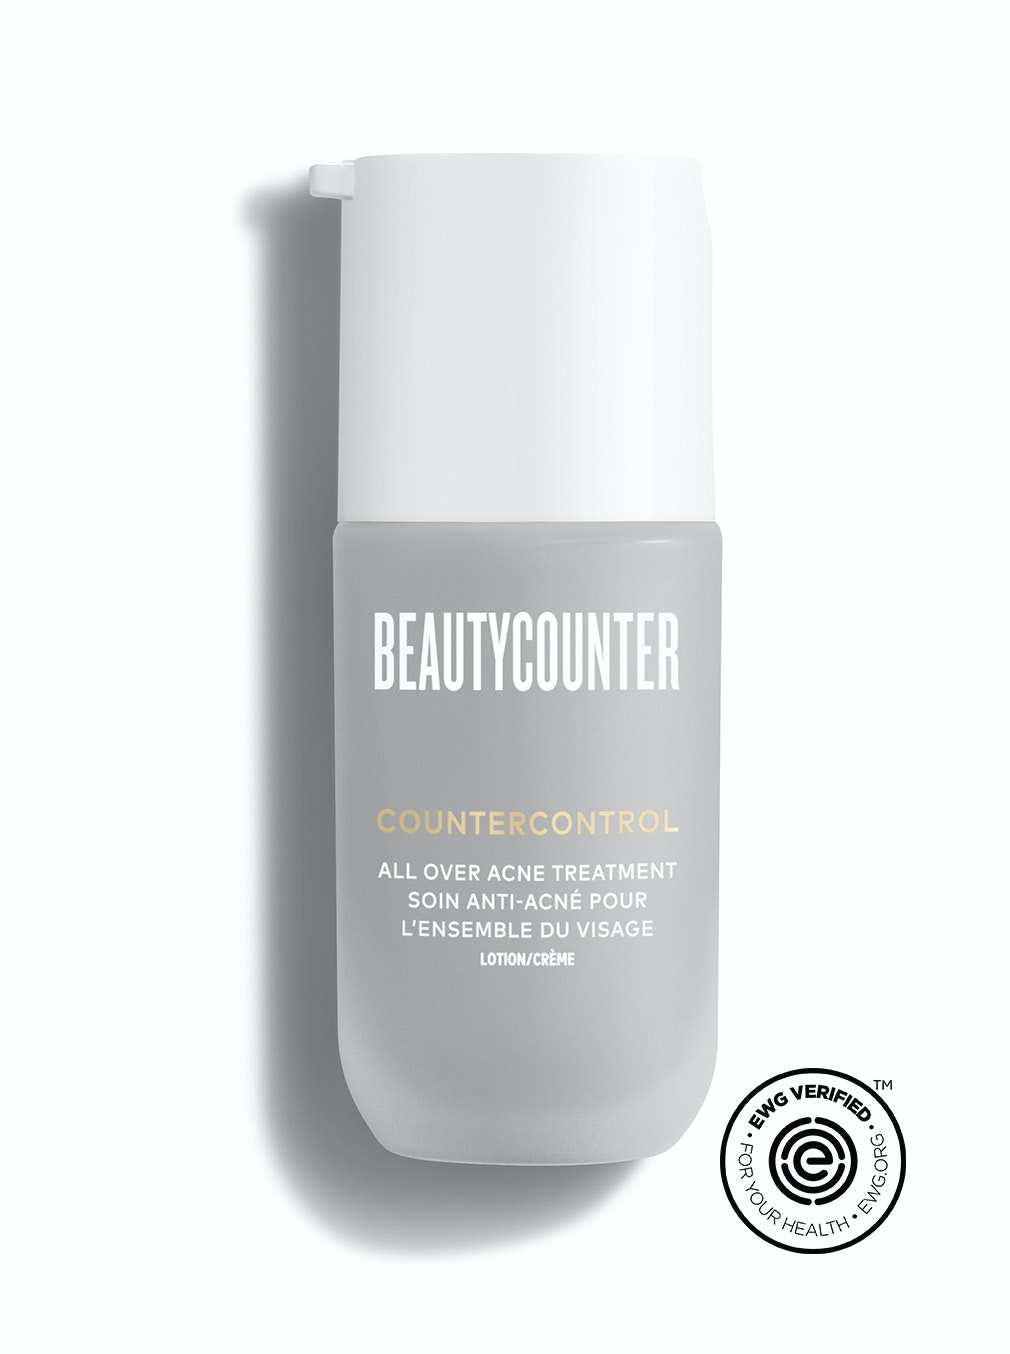 Countercontrol All Over Acne Treatment Skin Care Beautycounter